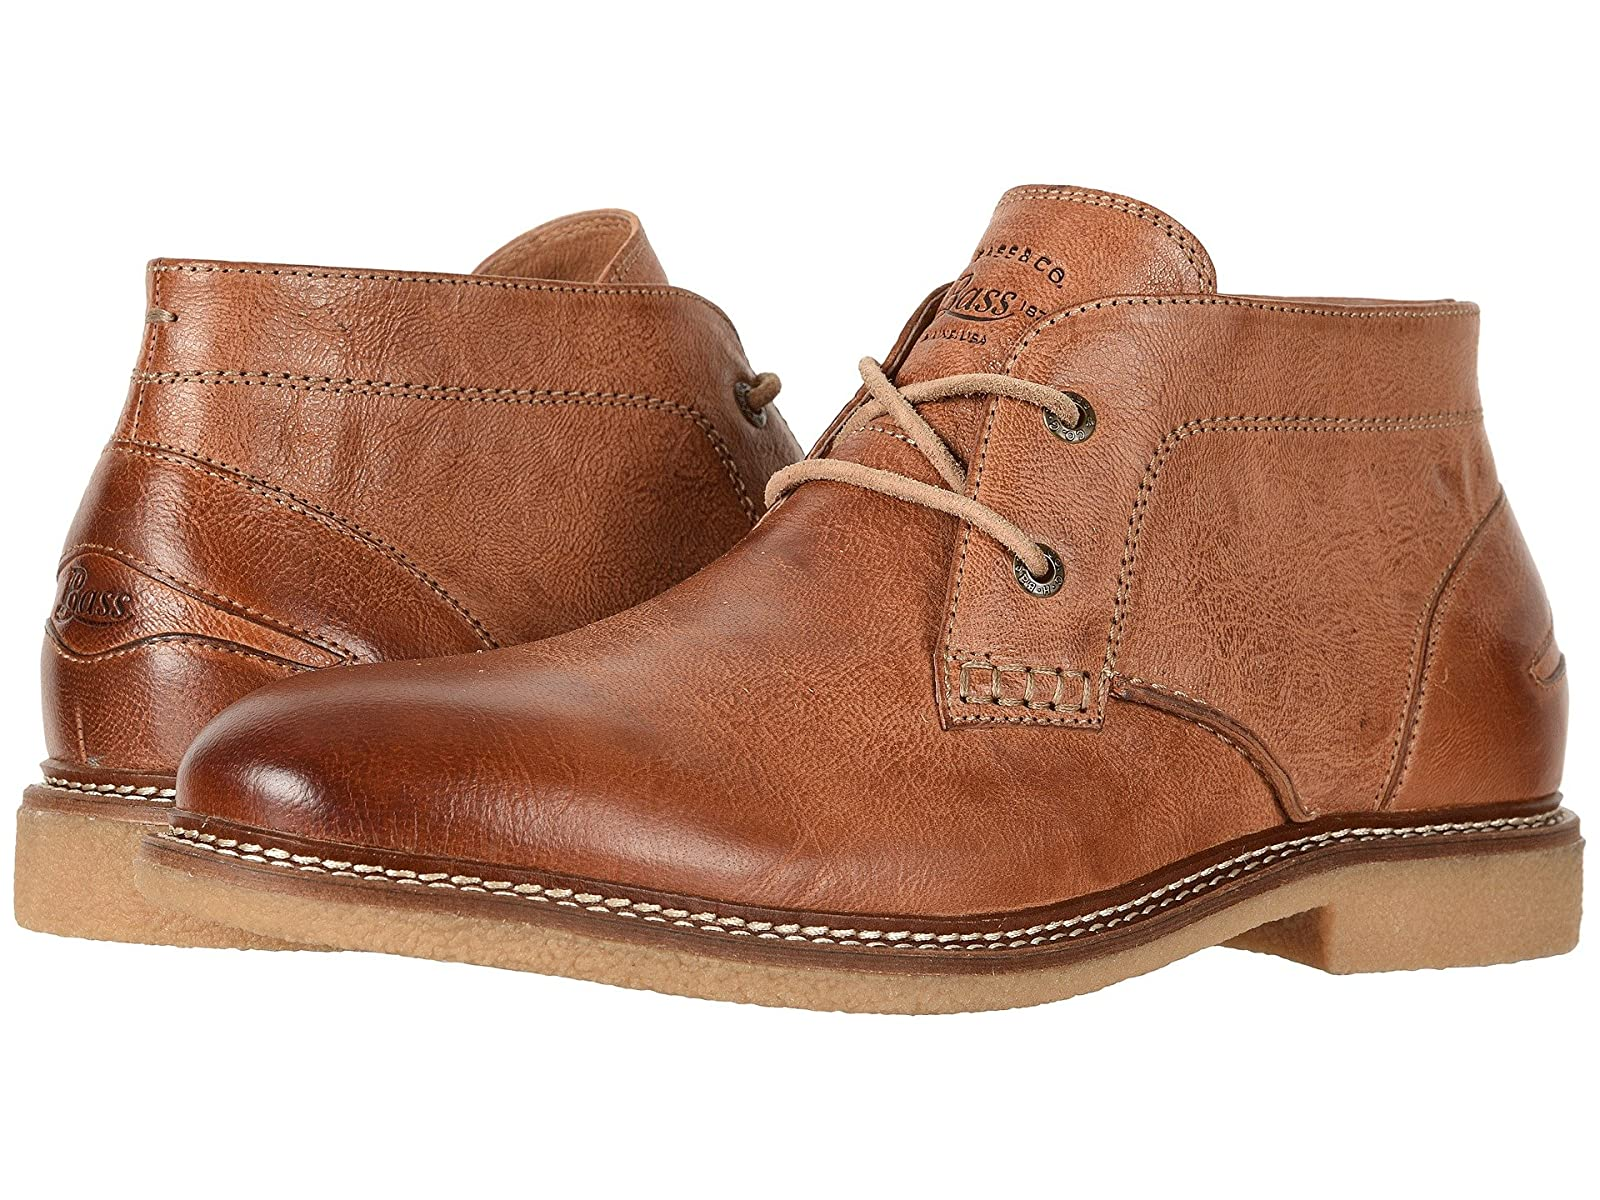 G.H. Bass & Co. BennettAffordable and distinctive shoes